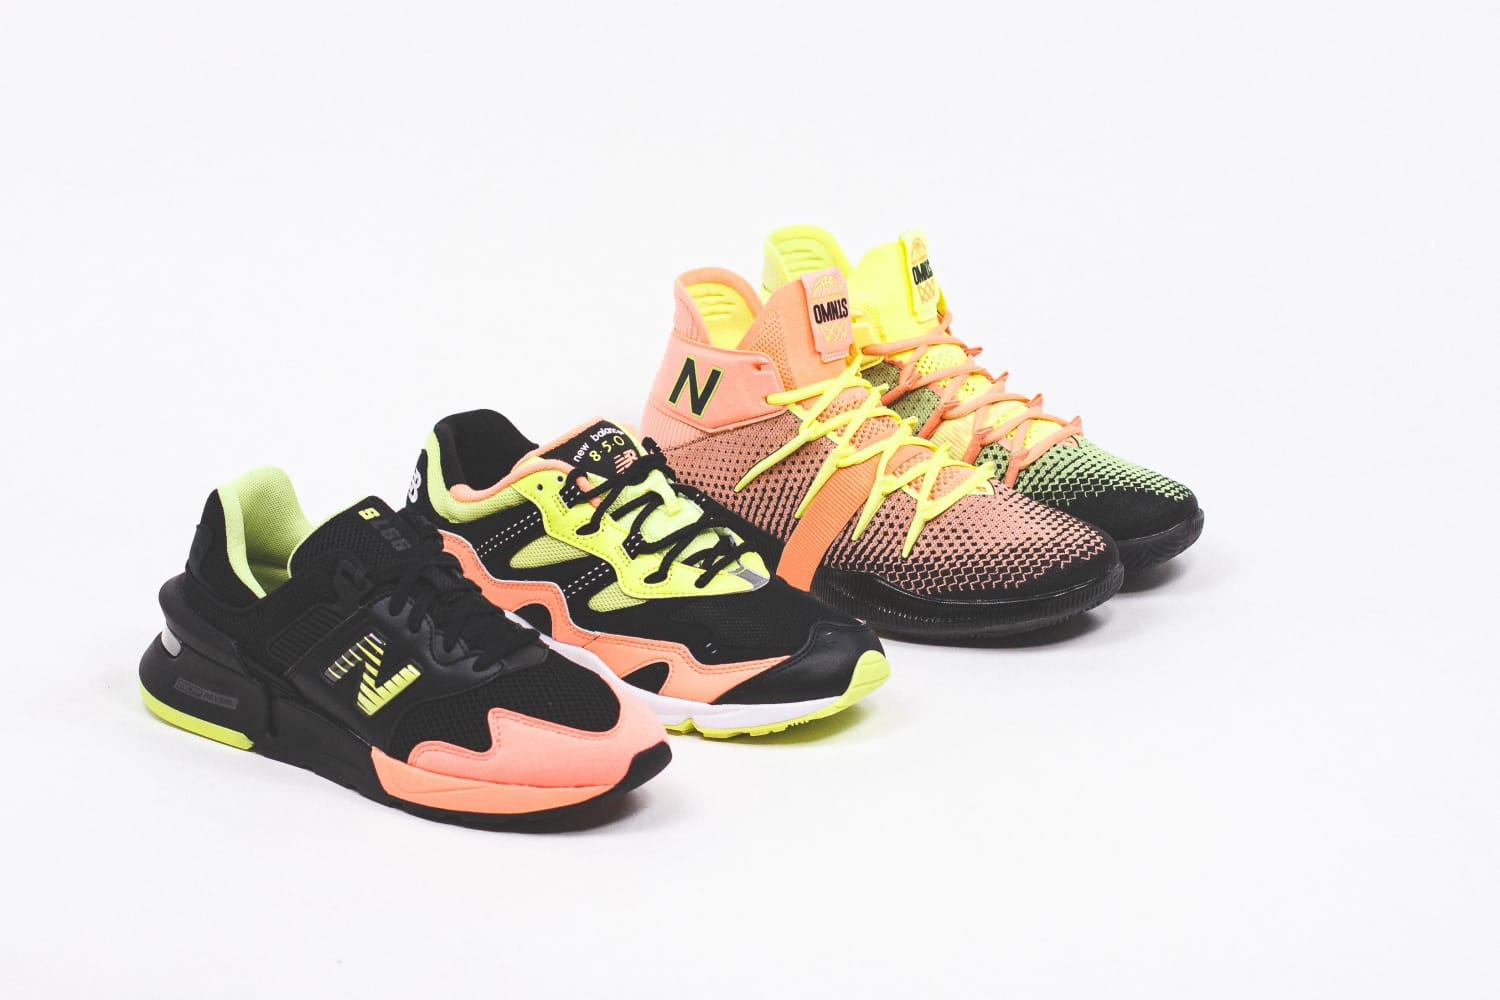 New Balance Basketball: The First Light Collection